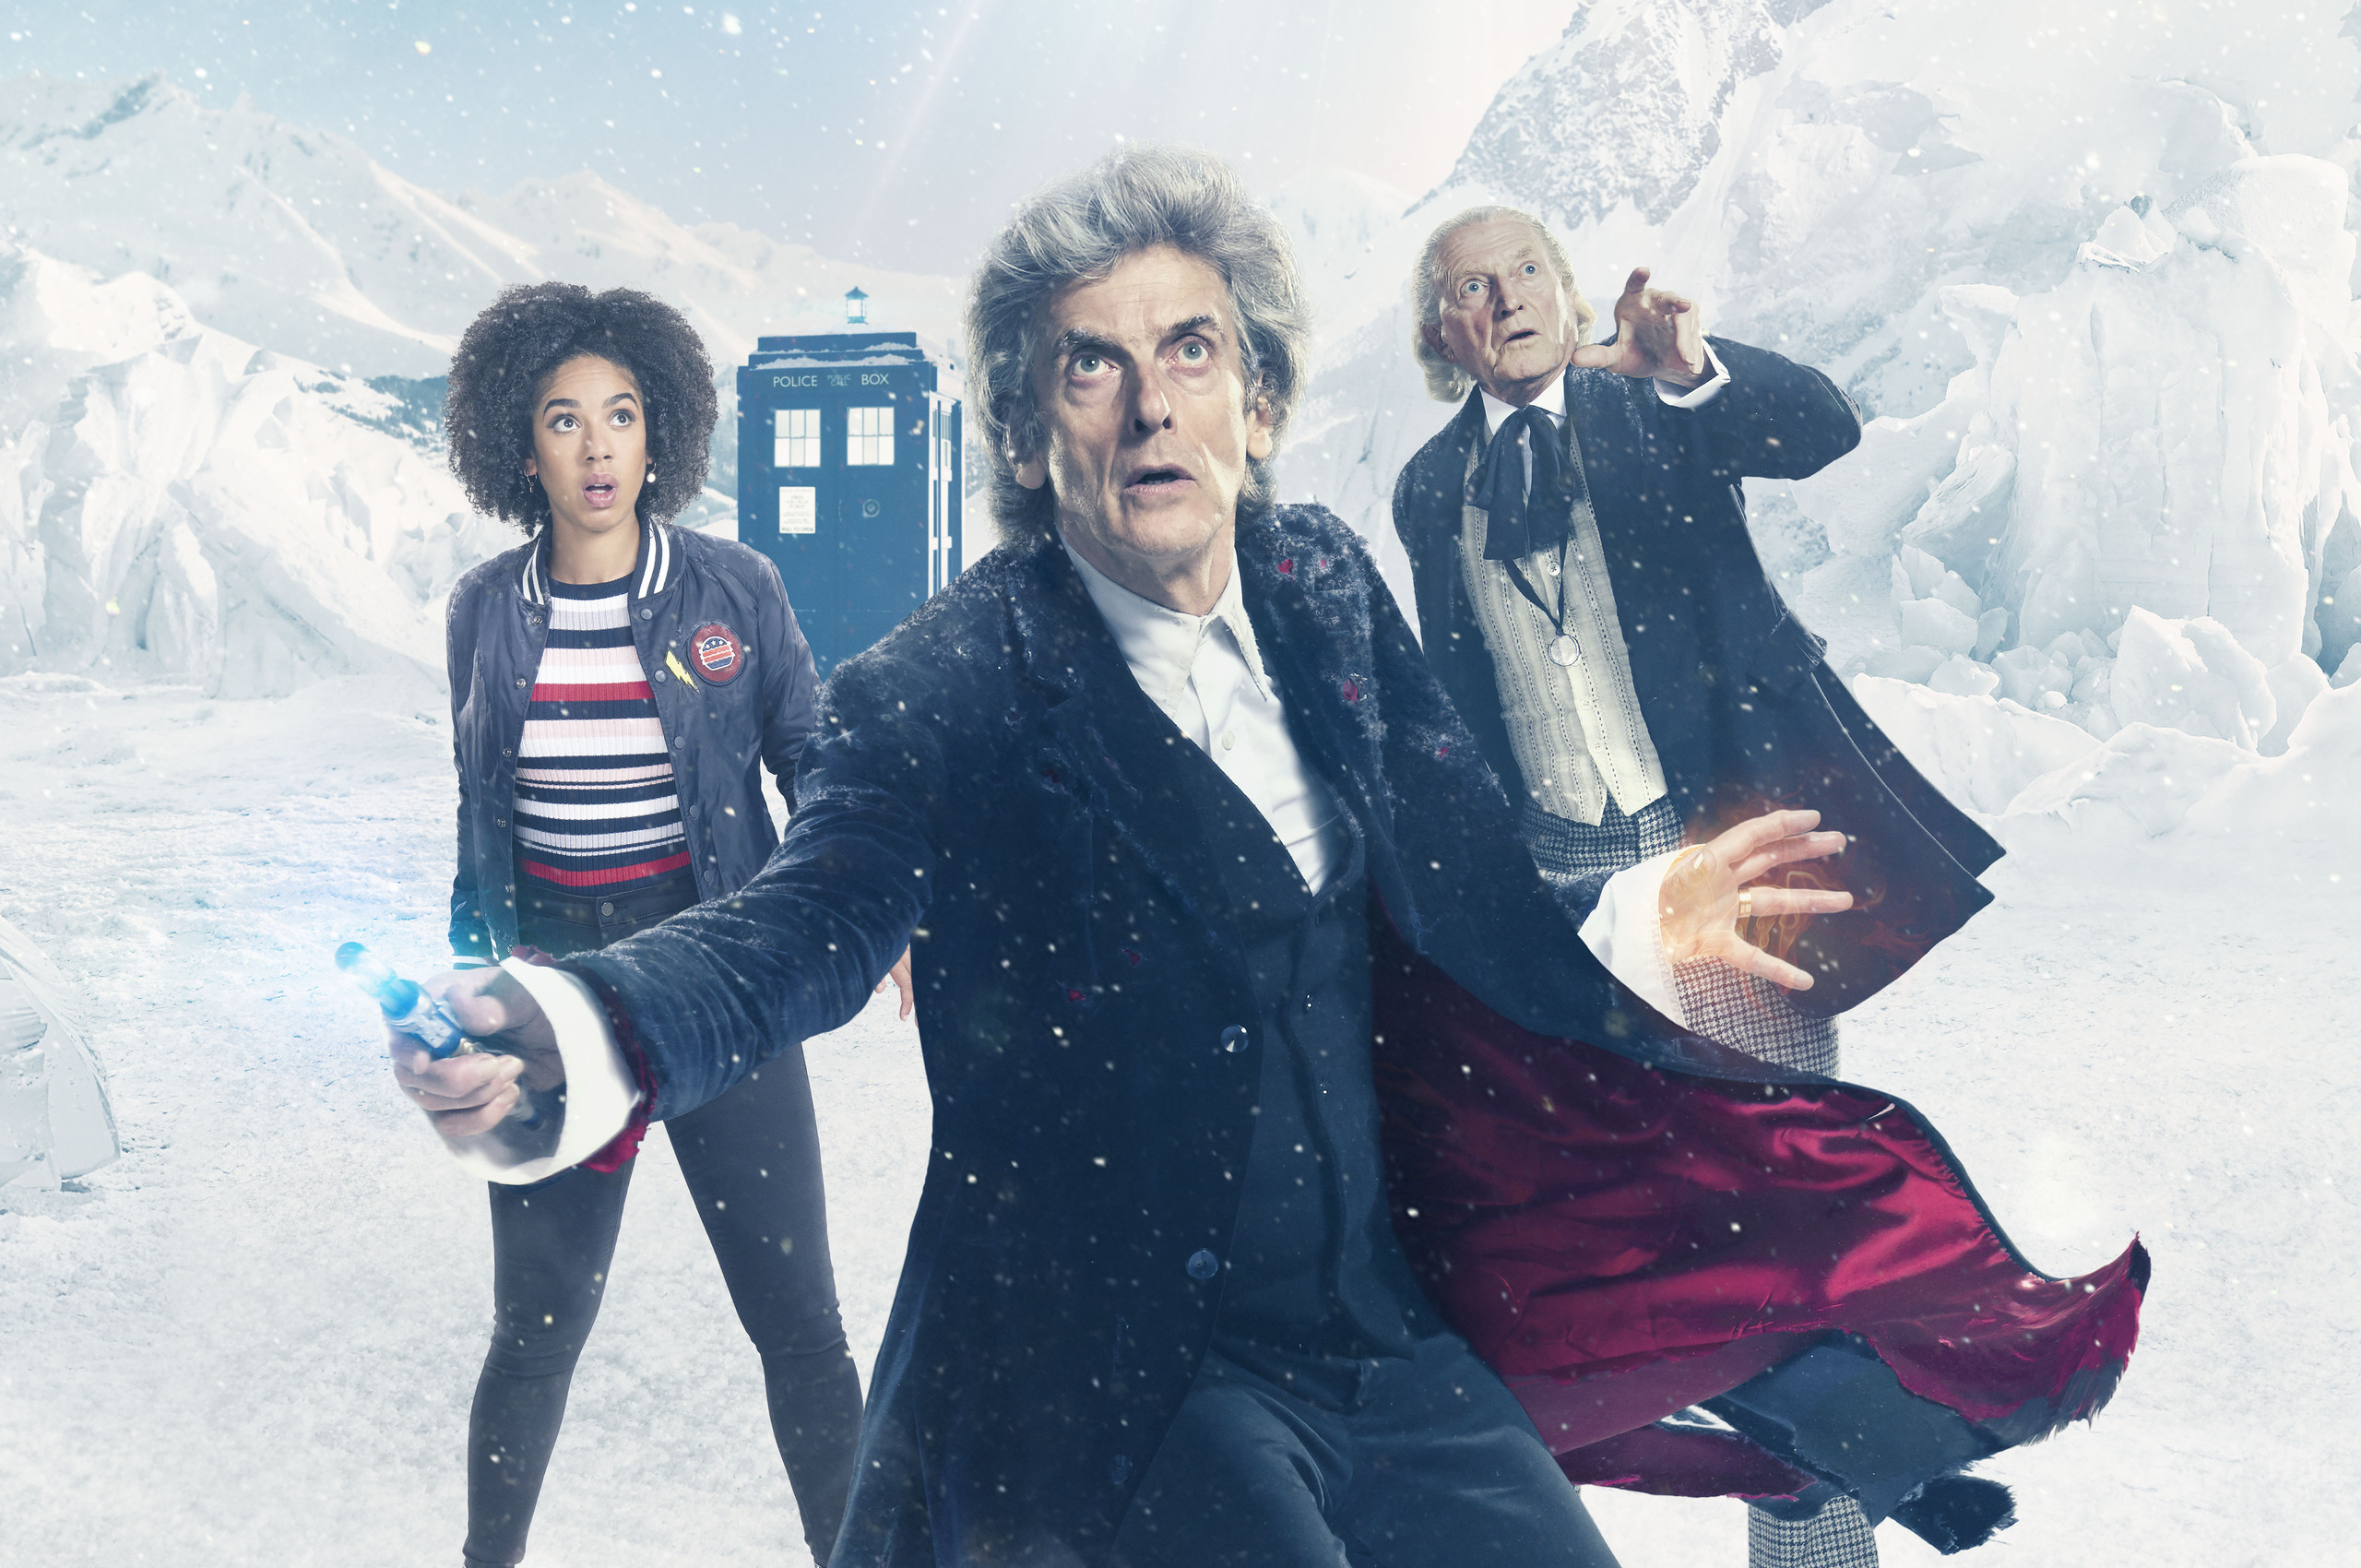 doctor-who-season-10-christmas-special-5k-cr.jpg